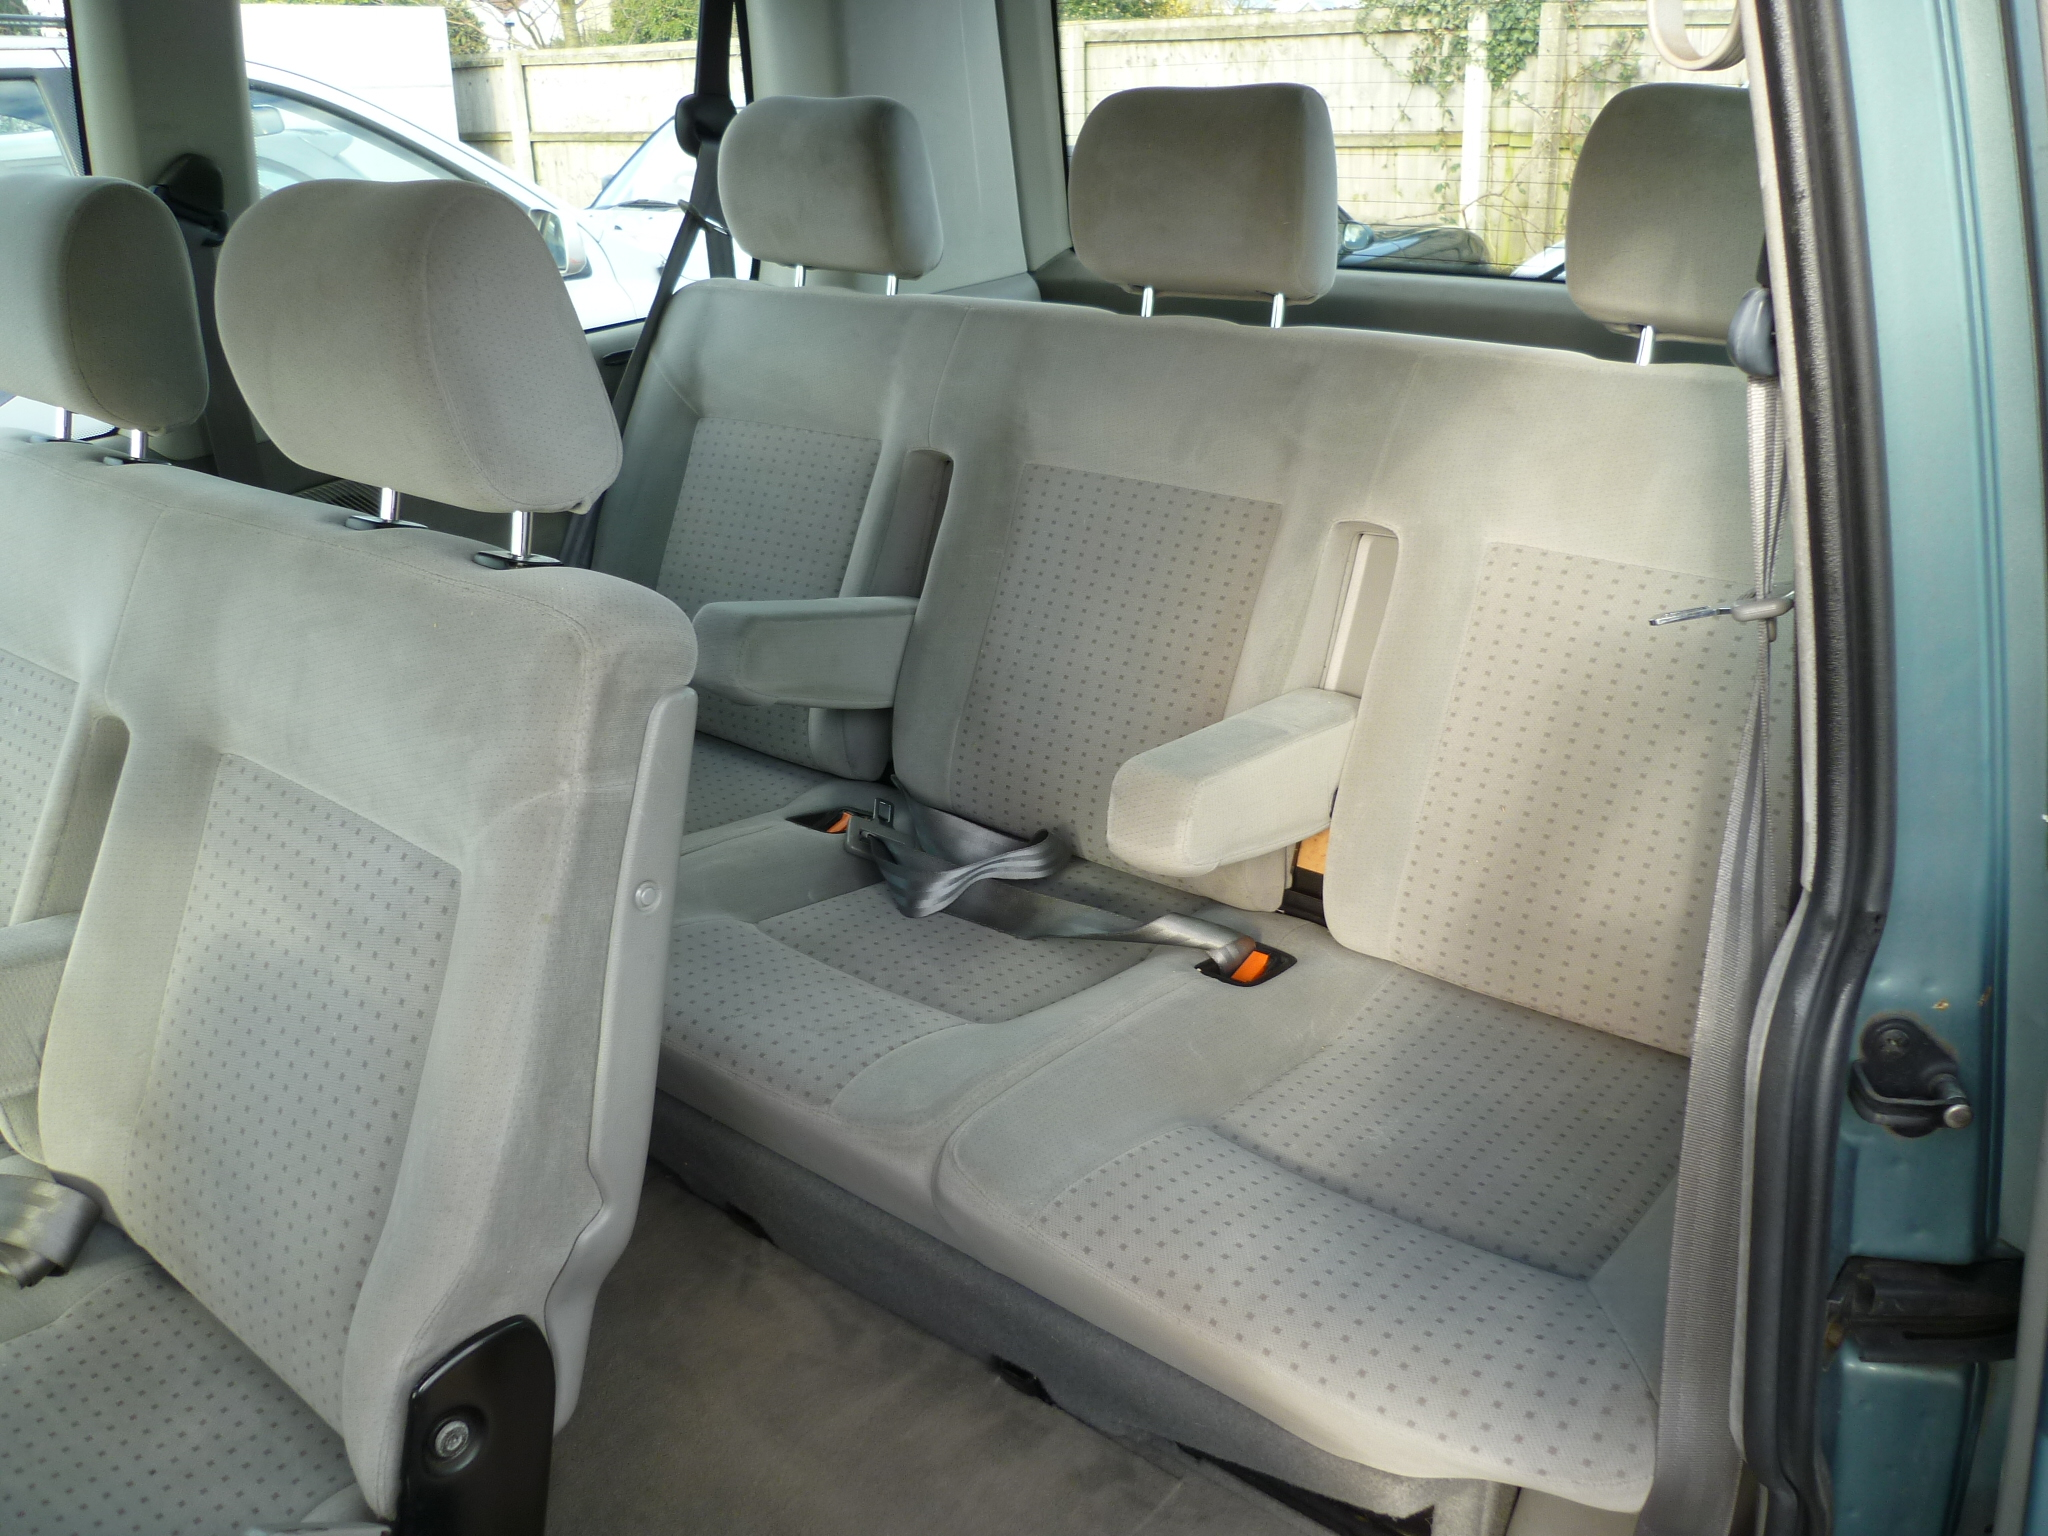 VW Caravelle 2.5TDI Automatic 008